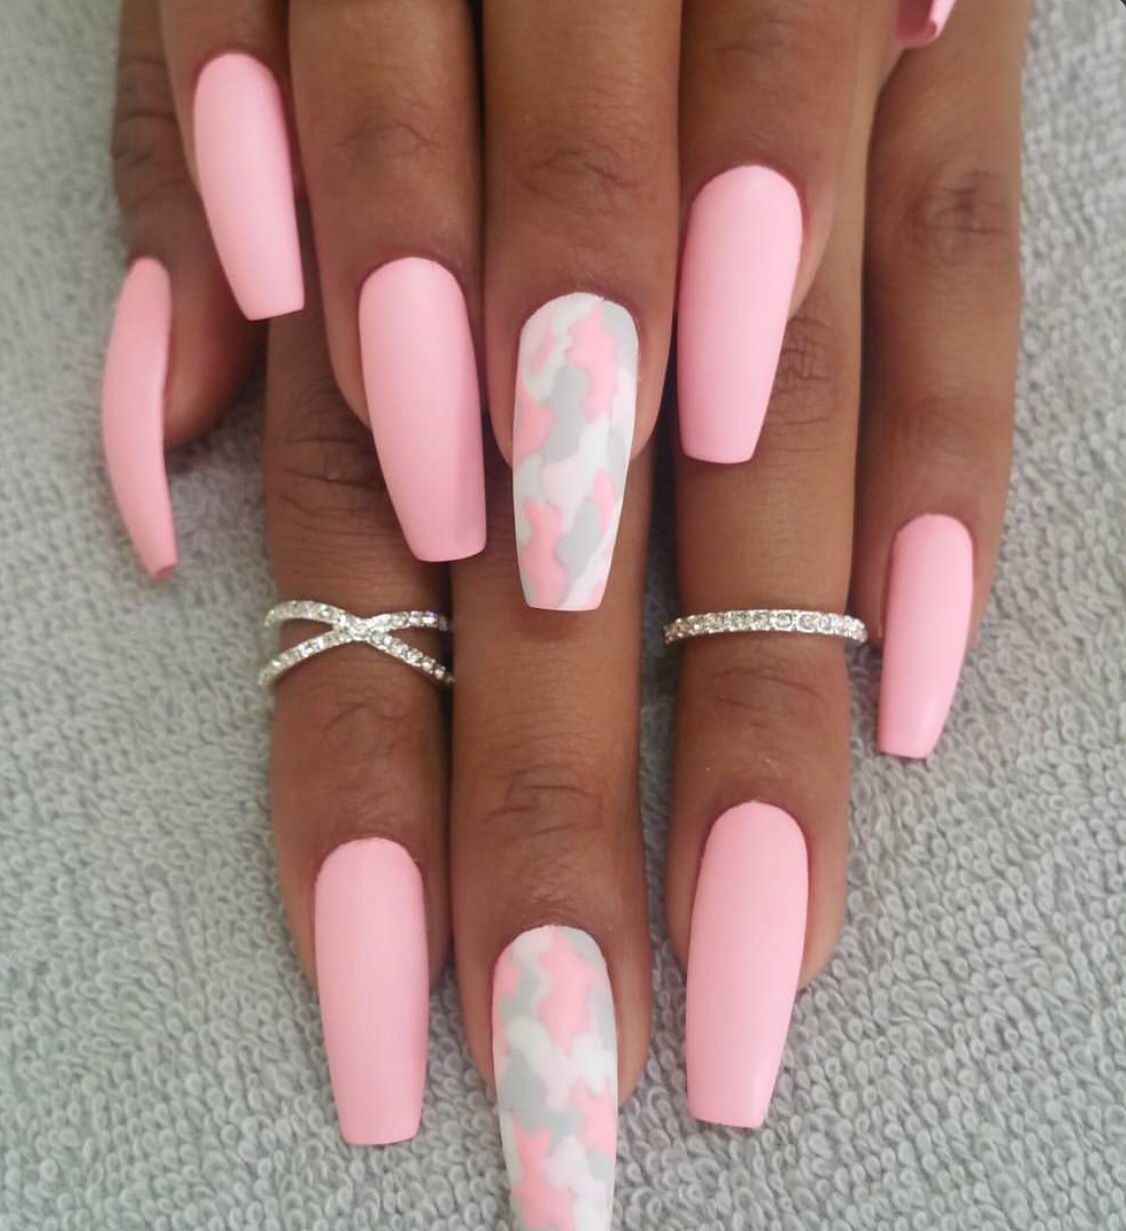 Pink and Camo Coffin Nails Nail Ideas, Manicure Ideas, Camo Nail Designs,  Nail - Pink And Camo Coffin Nails Nails In 2018 Pinterest Nails, Nail